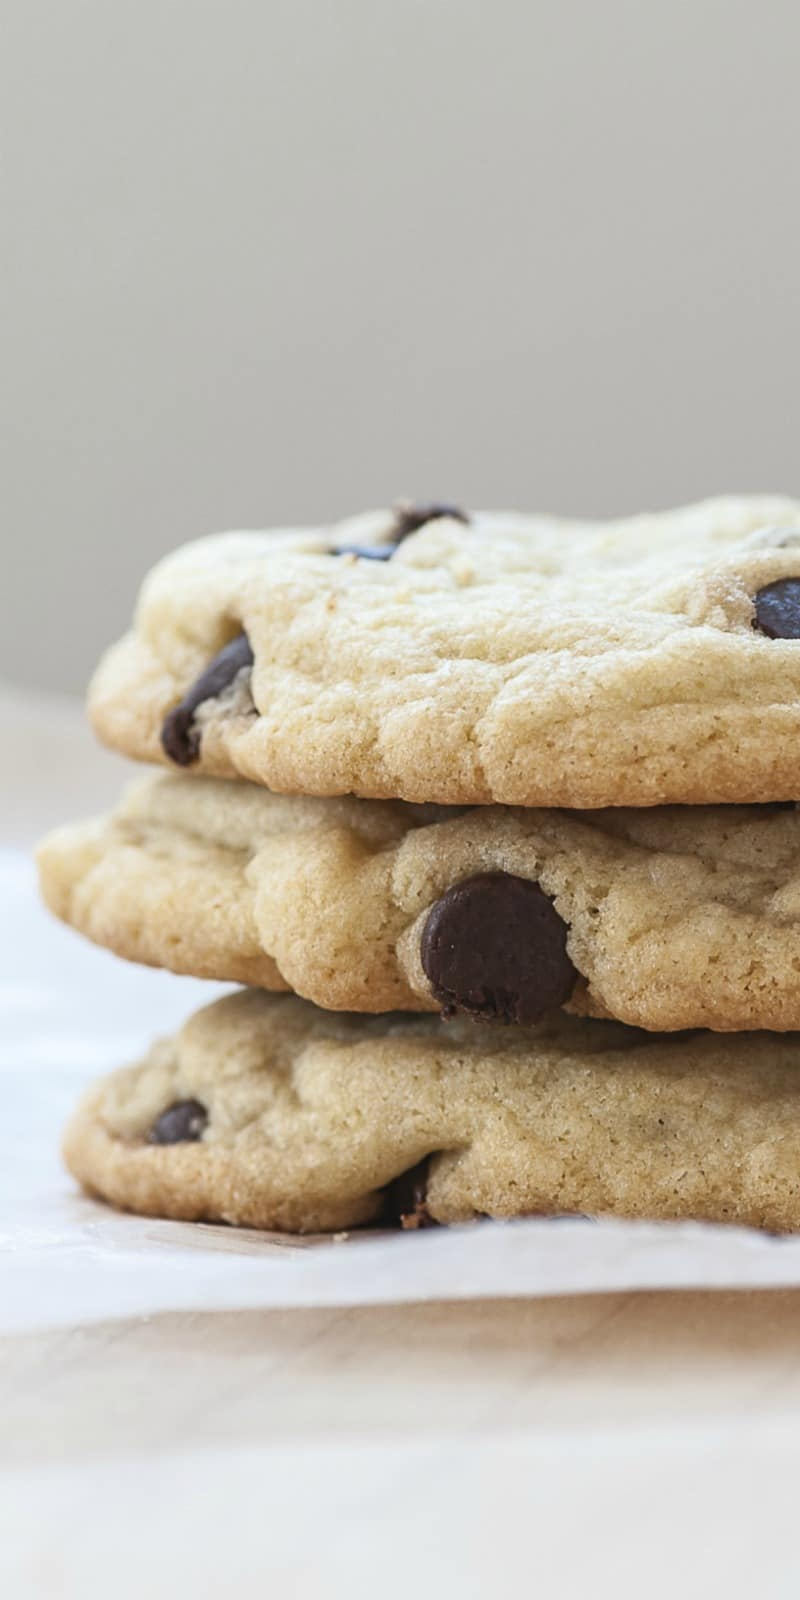 Most Requested Chocolate Chip Cookies Recipe - a Family Favorite | 31Daily.com